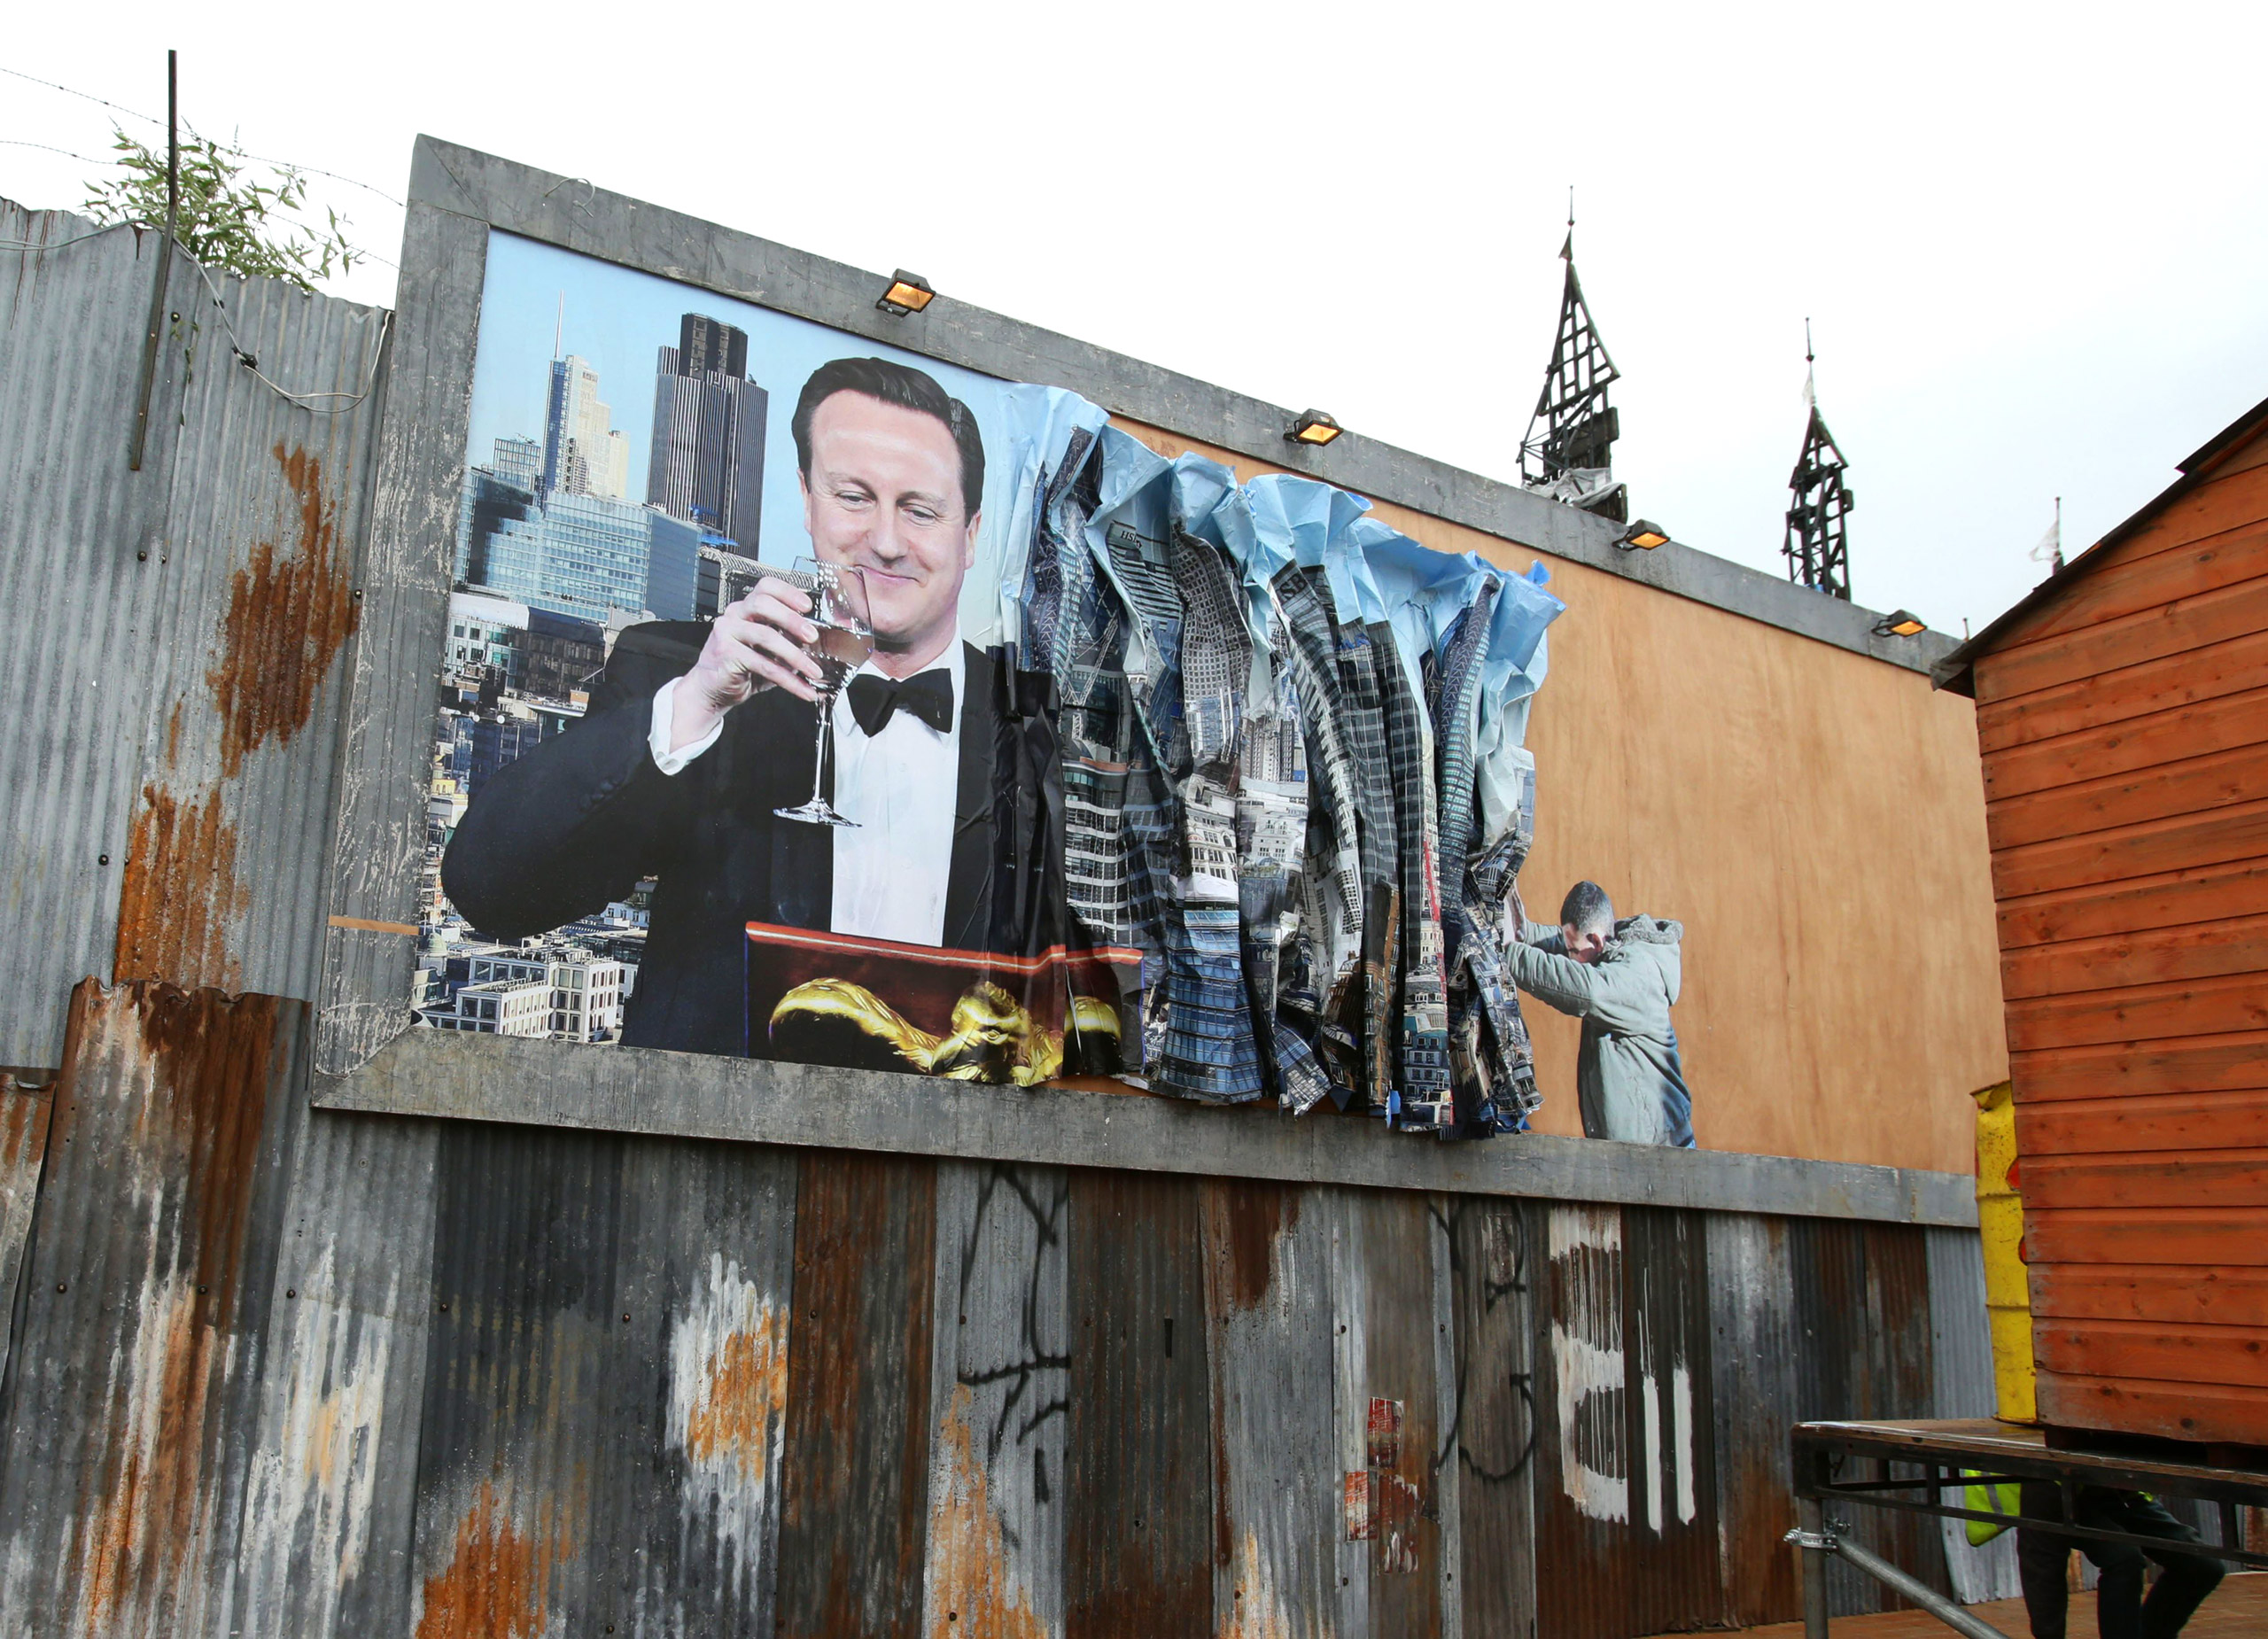 A billboard depicting British Prime Minister David Cameron by Peter Kennard and Cat Phillips.